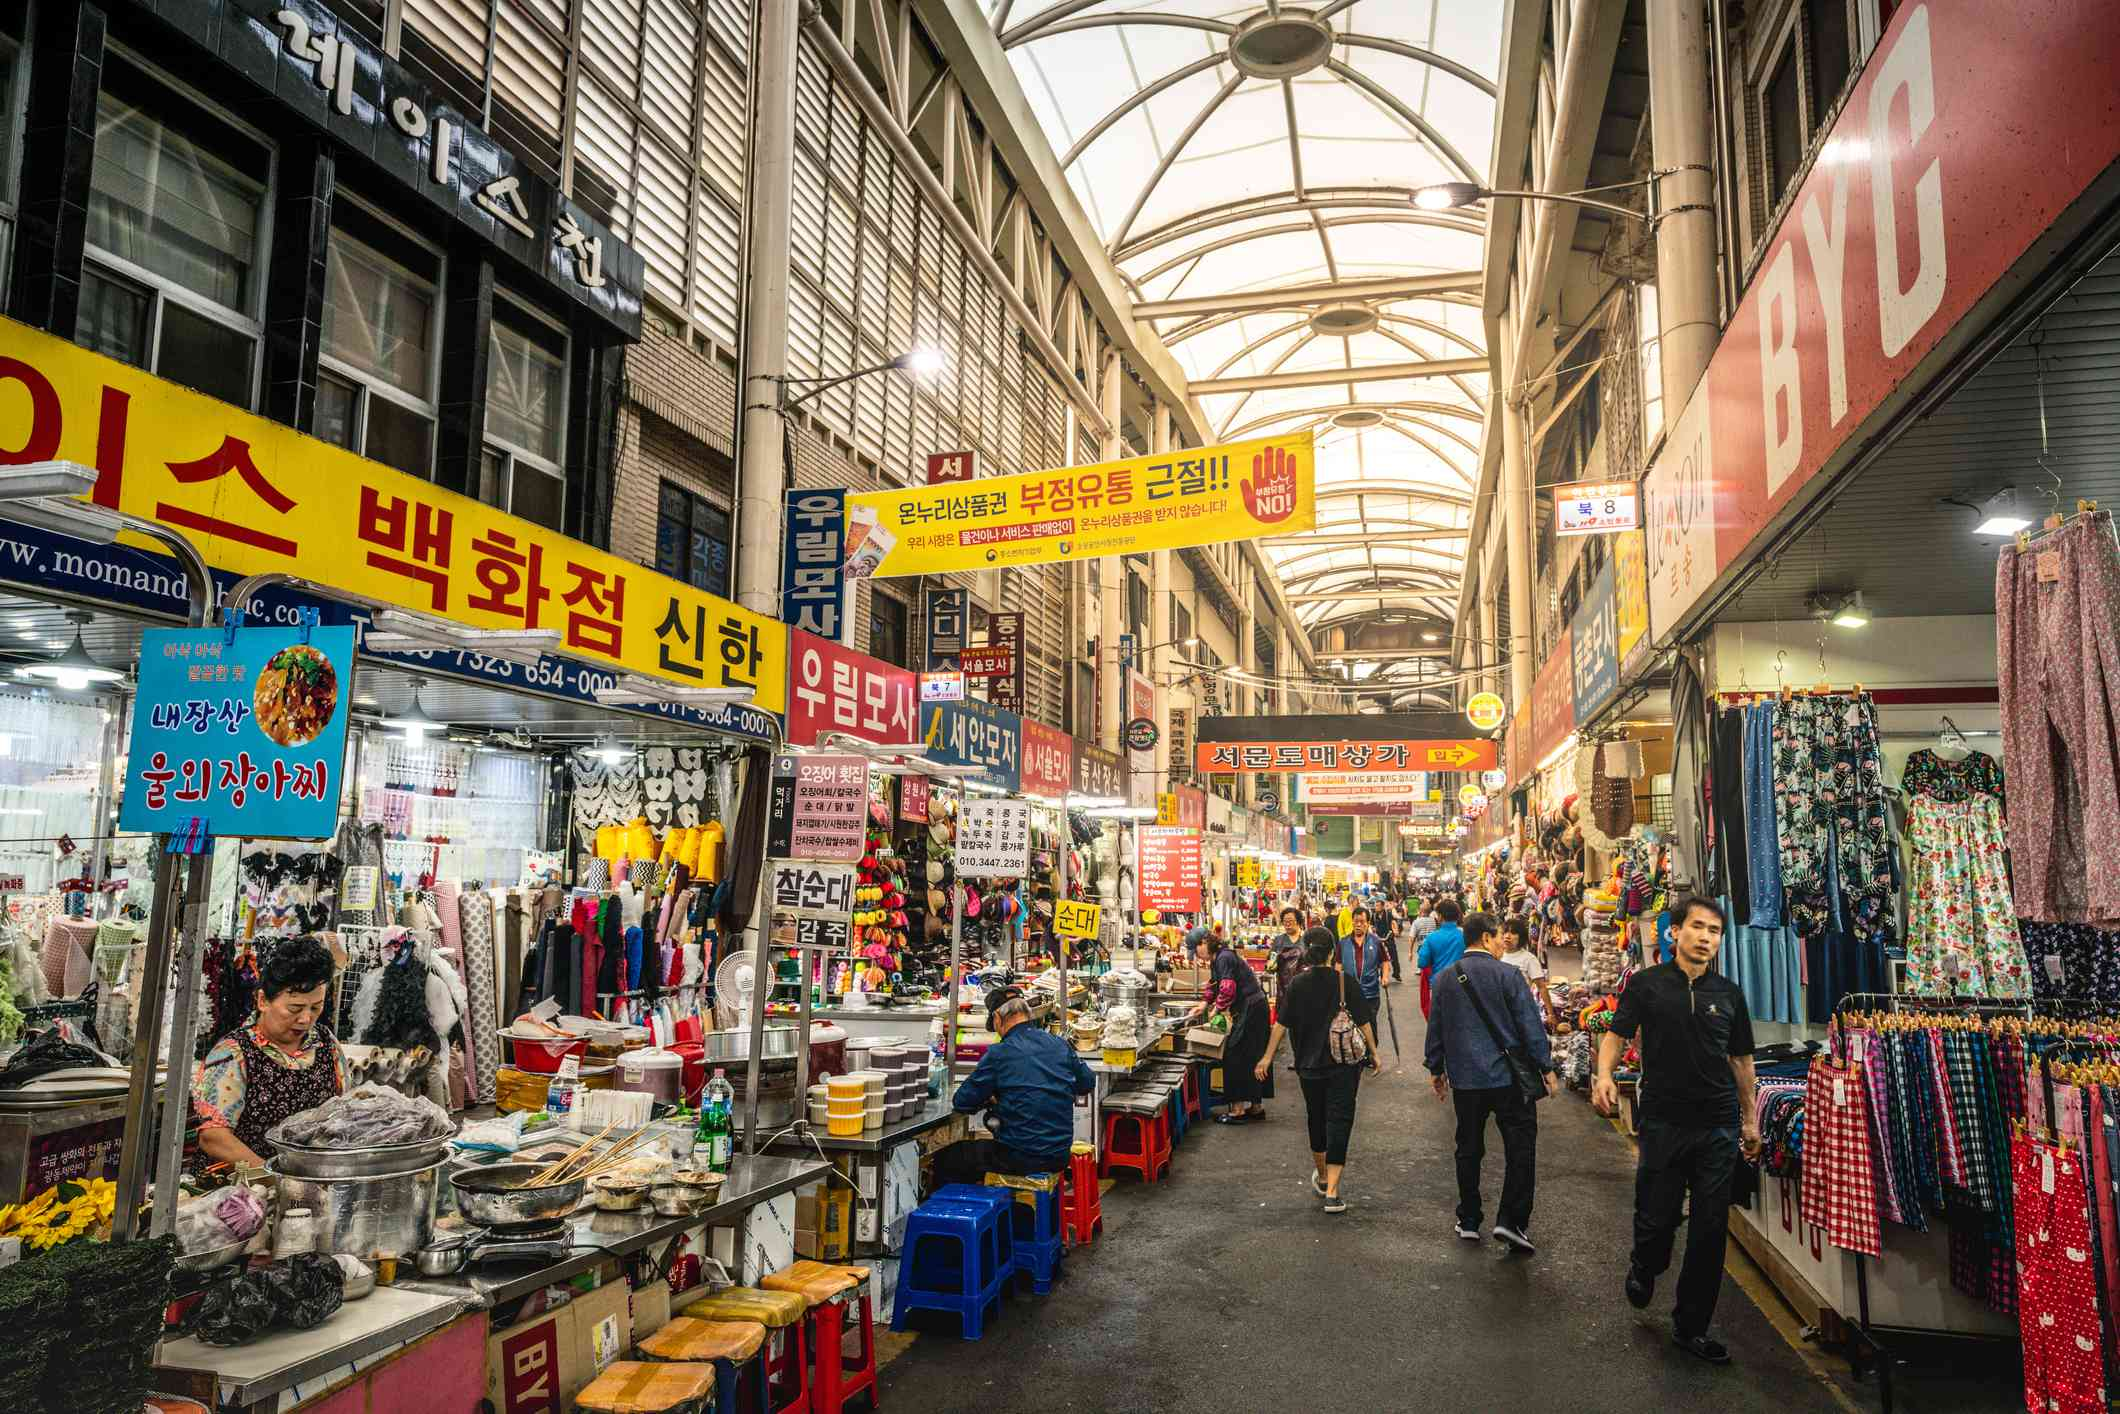 Daegu Seomun covered market during daytime alley view with food and clothes stalls and people in Daegu South Korea